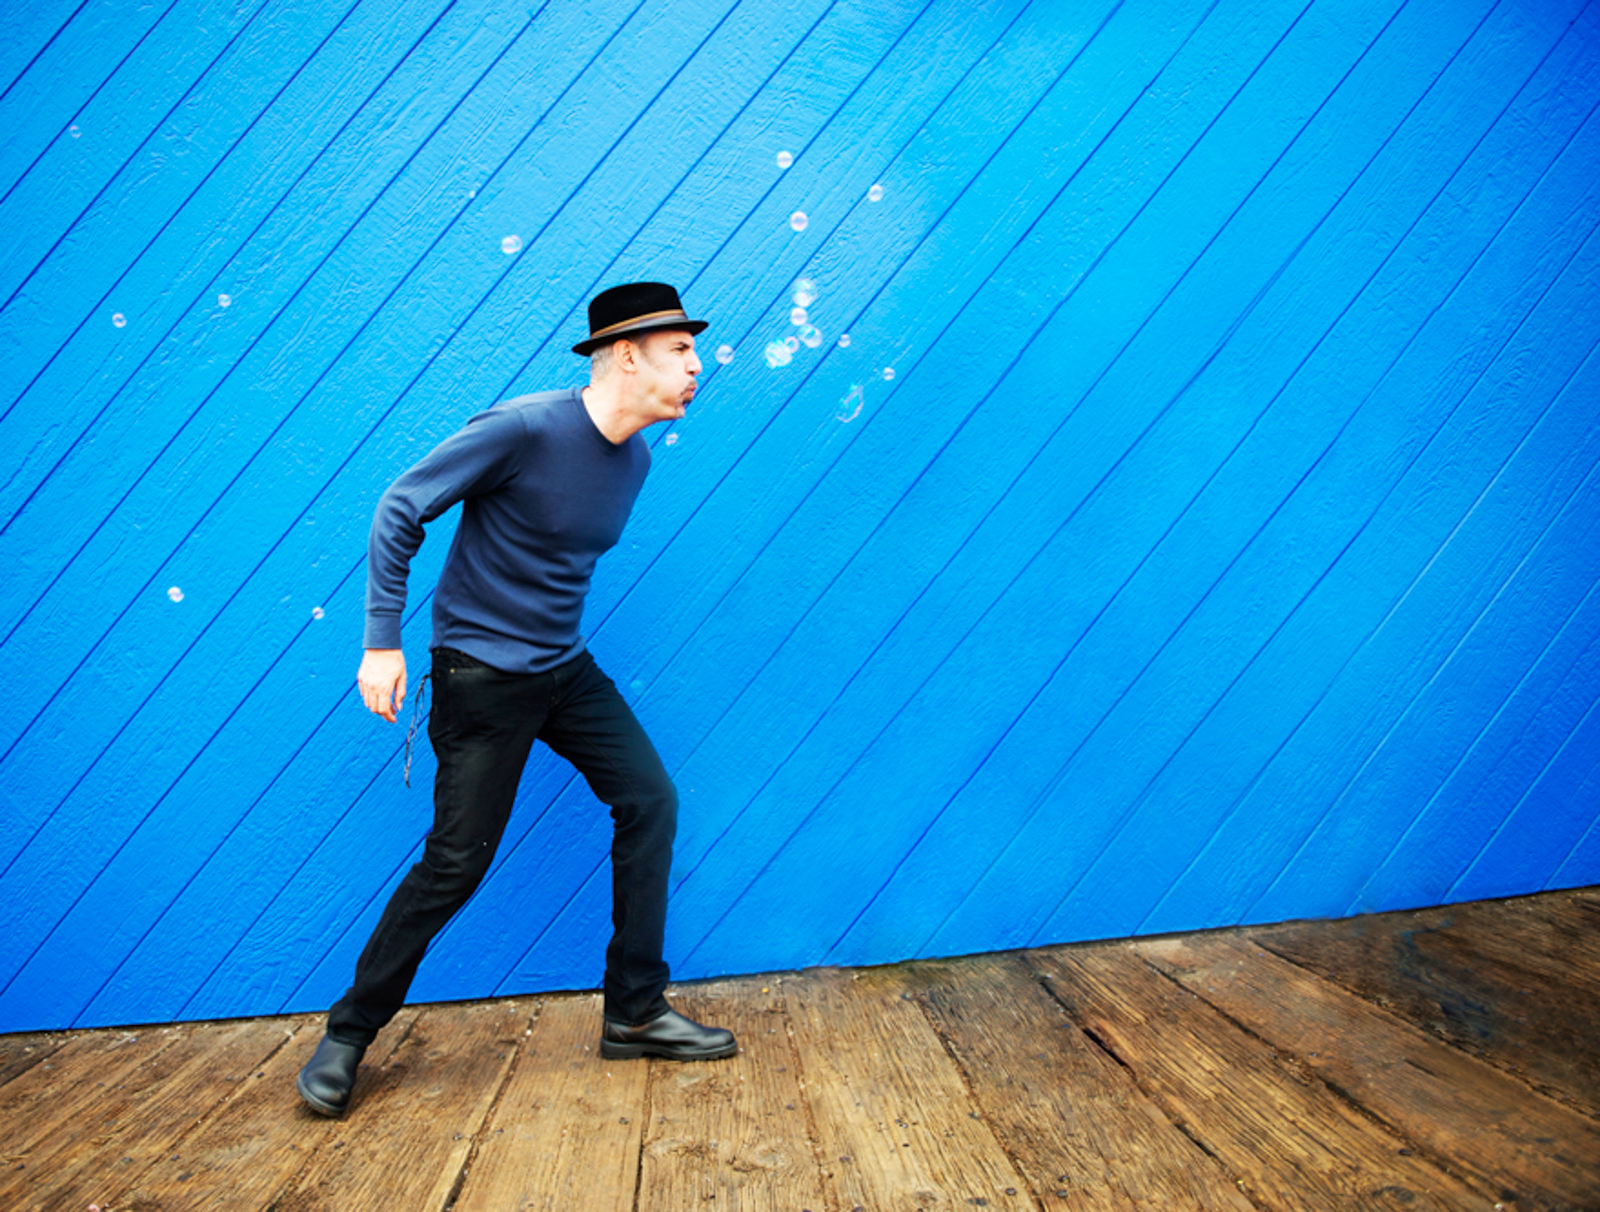 Portrait of musician blowing bubbles in front of bright blue background